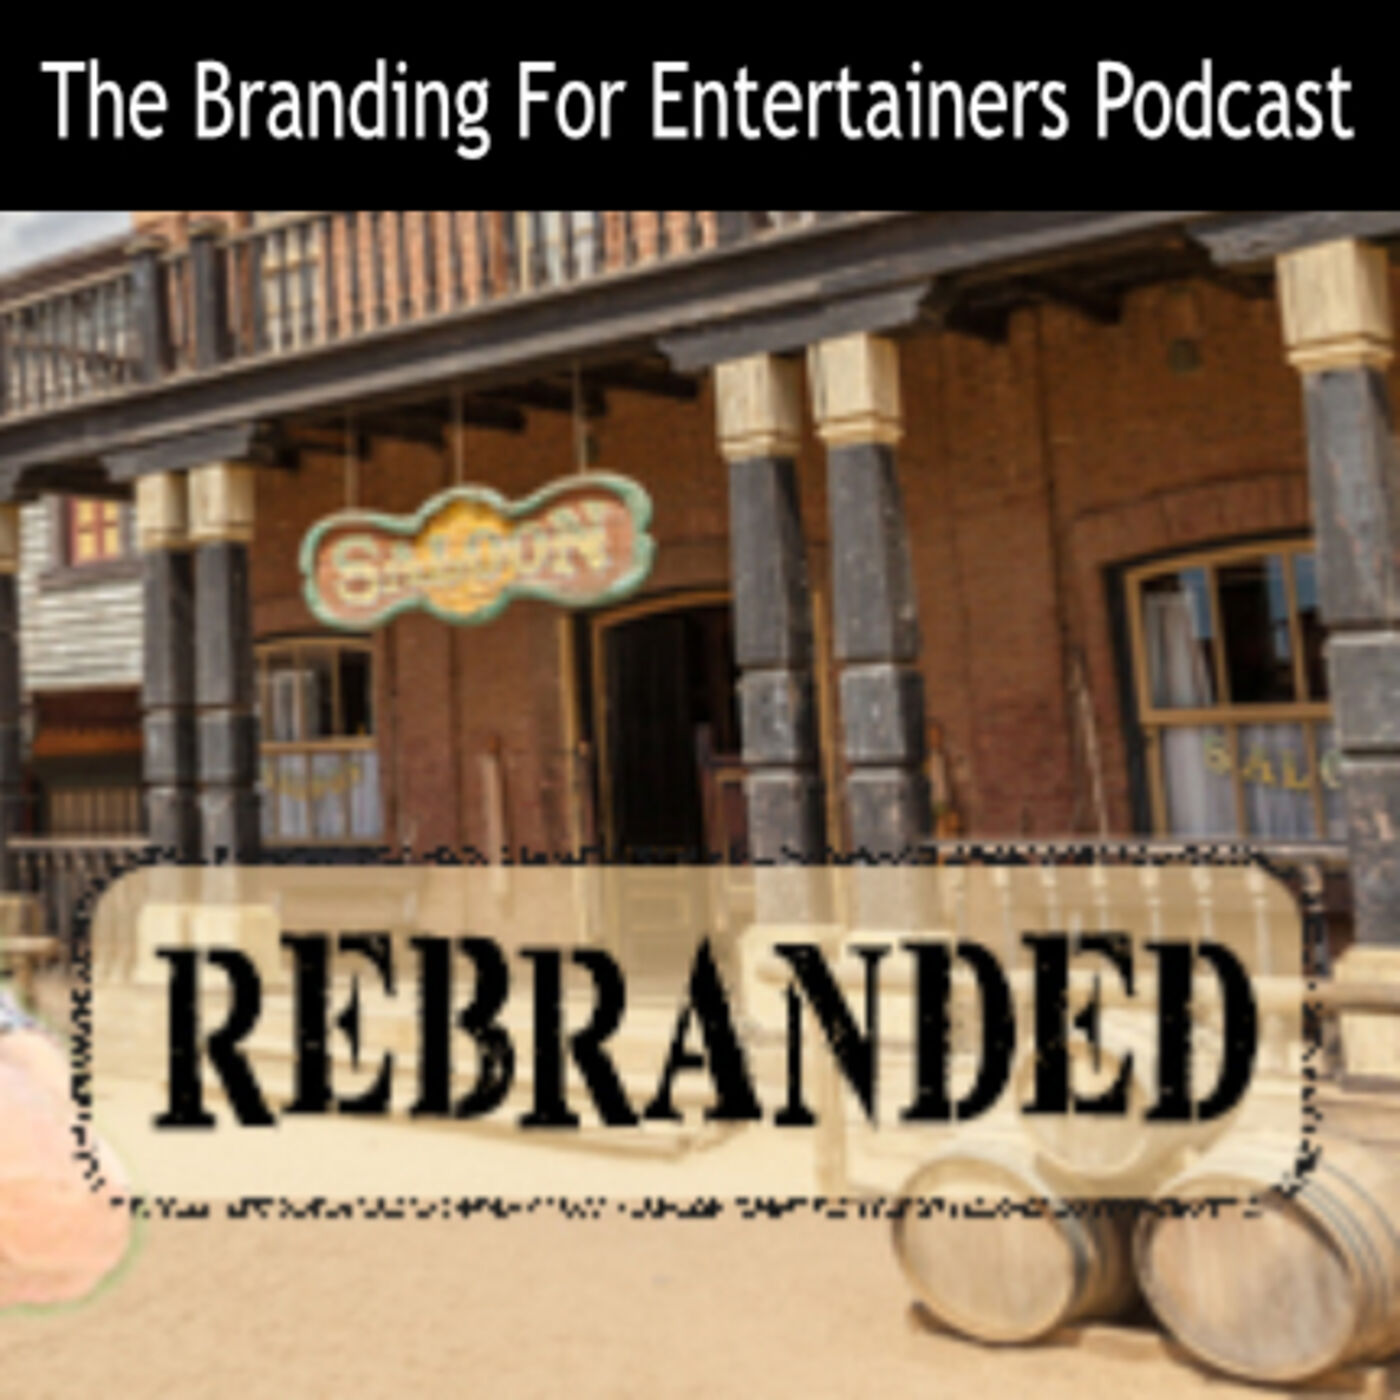 BFE EP03: Rebranded (Part 3 of 3)